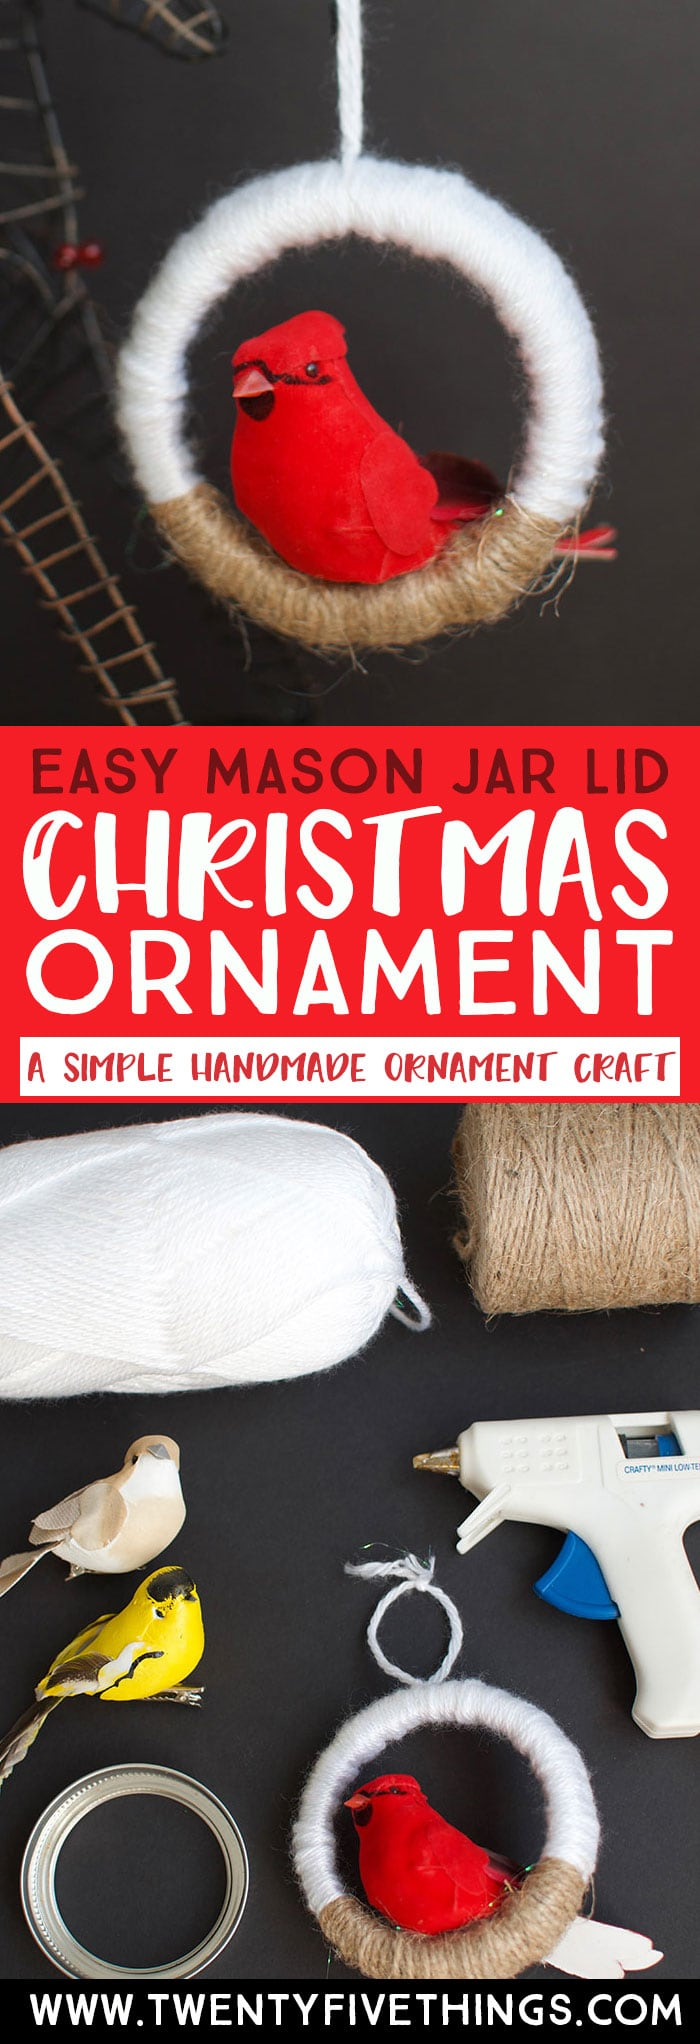 Make this easy mason jar lid ornament for Christmas this year. Grab your craft birds from the Dollar Tree and scrounge your kitchen drawers for those extra canning lids. Click through for the details. #DIYChristmasOrnaments #handmadeChristmas #EasyChristmasCrafts #EasyDIYOraments